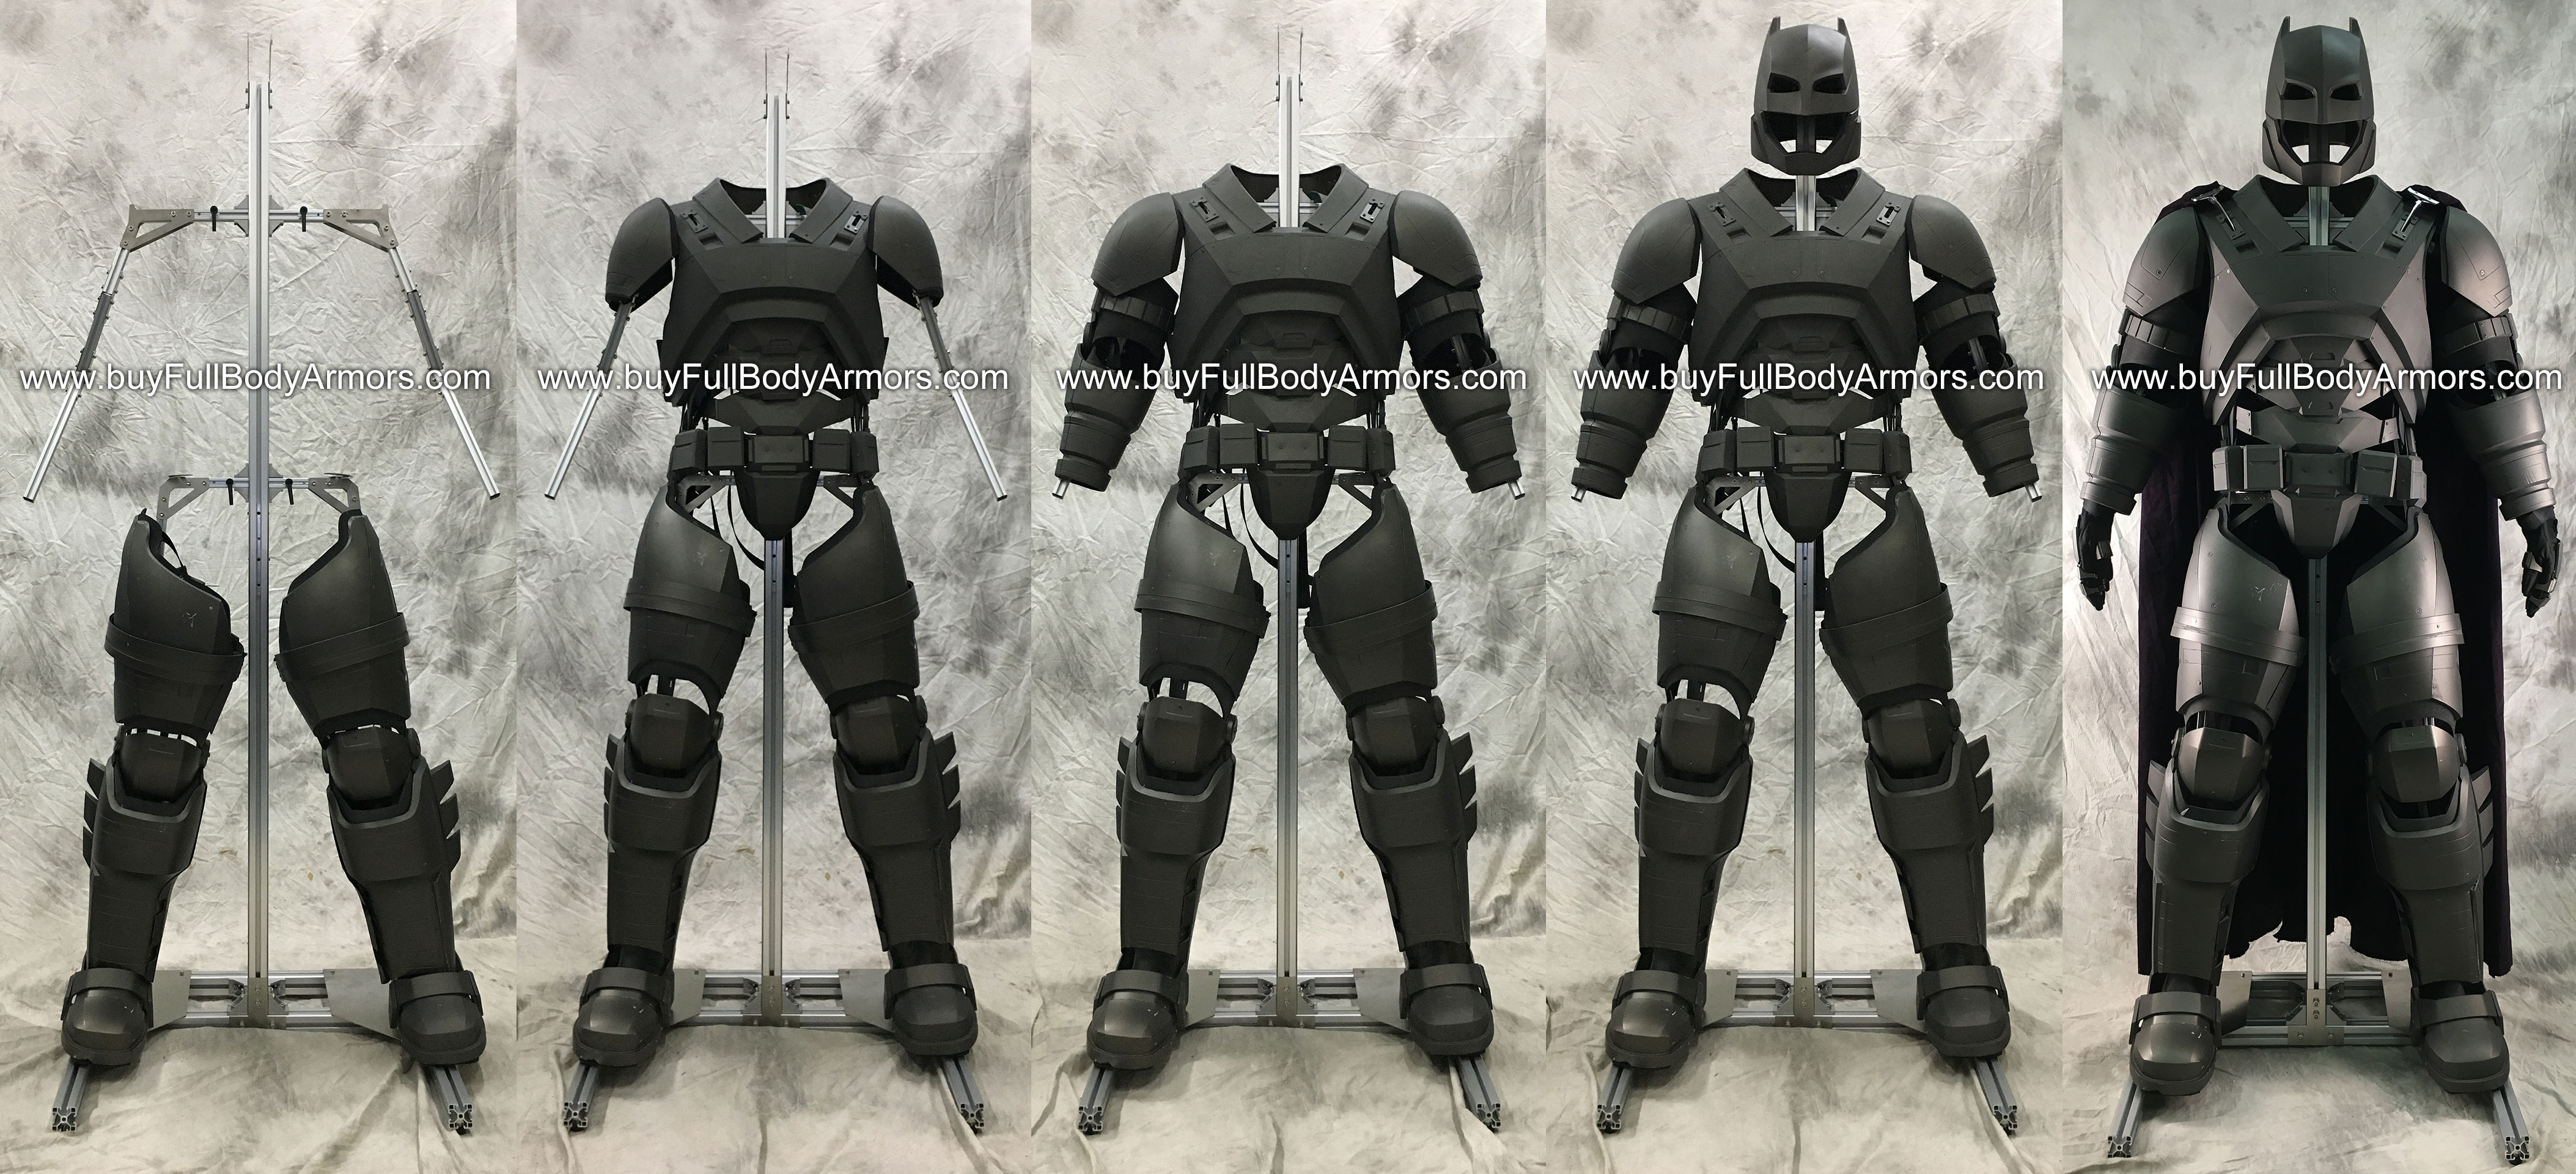 Put an Armored Batsuit Armor Costume onto a Universal Aluminium Alloy Support (UAAS) 2